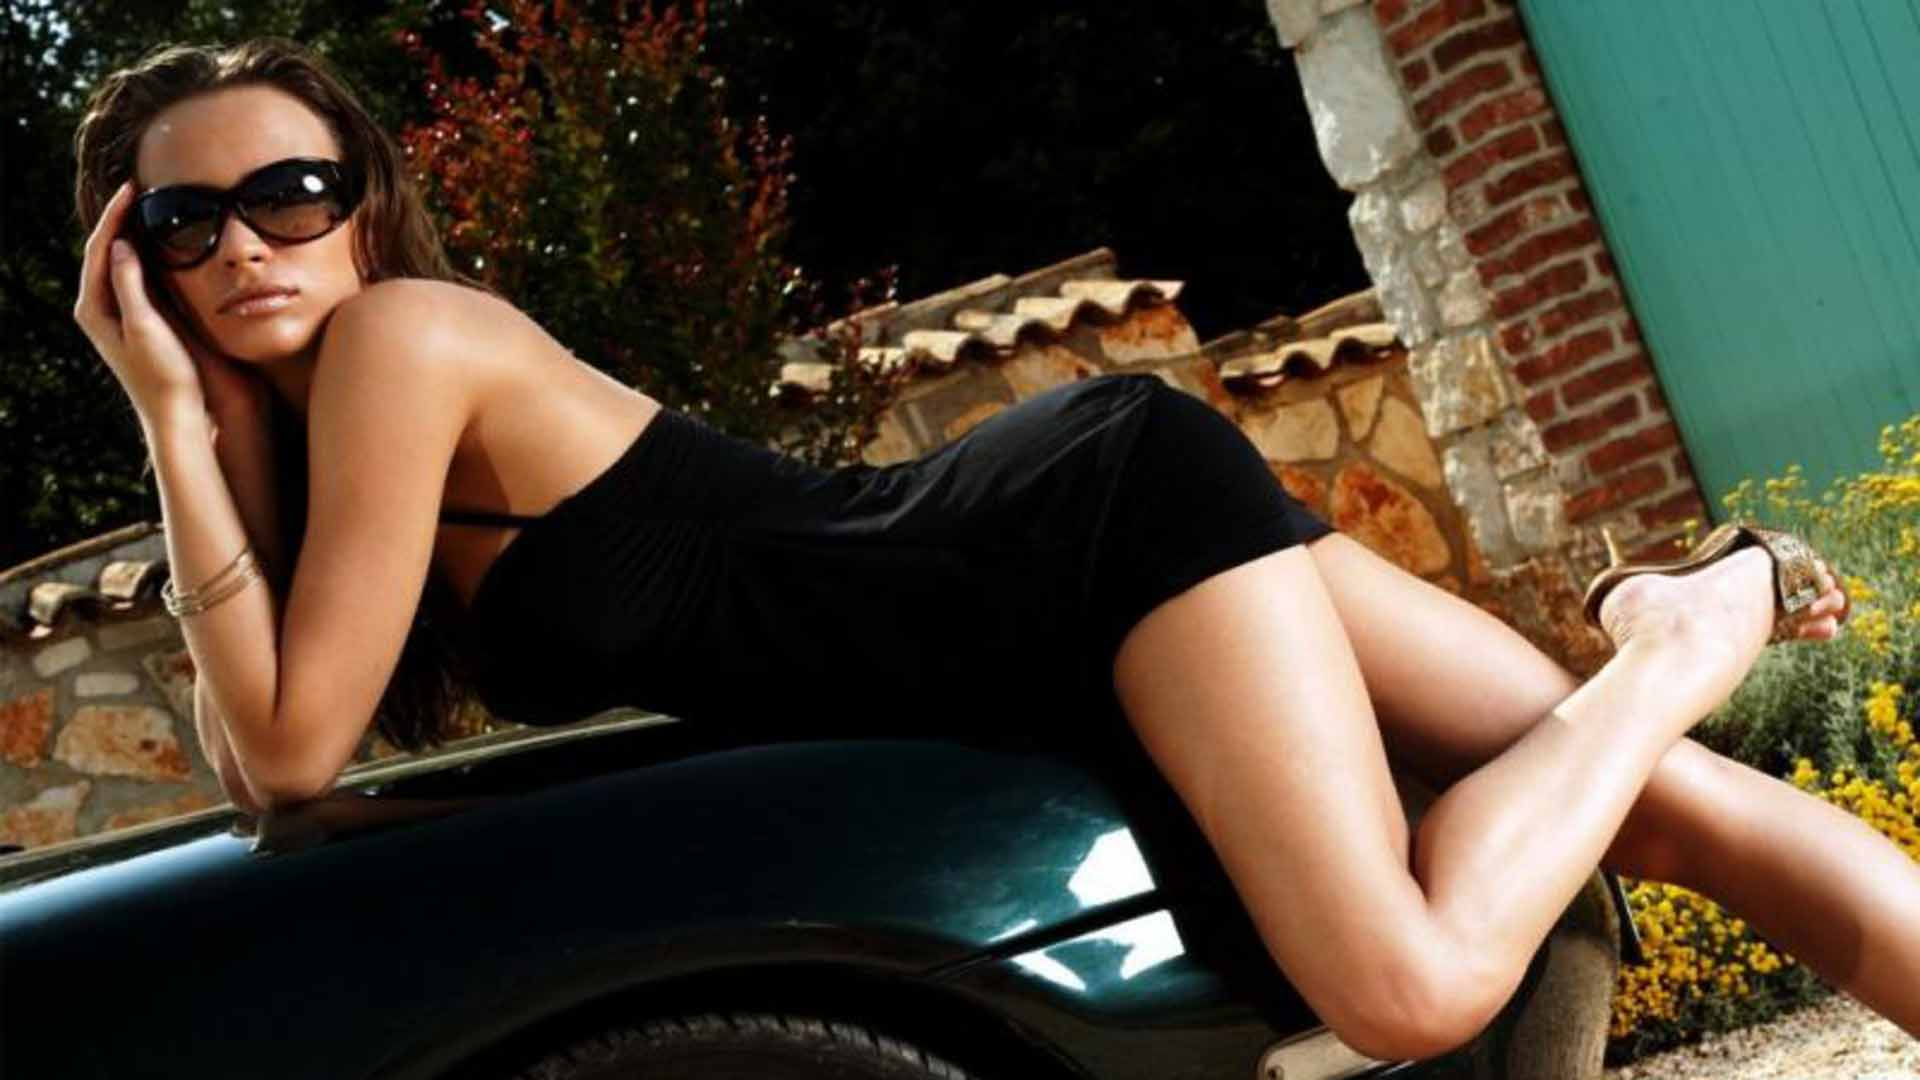 1080p Wallpaper Cars And Girls Wallpapers hd 1080p Girls Cars 1920x1080